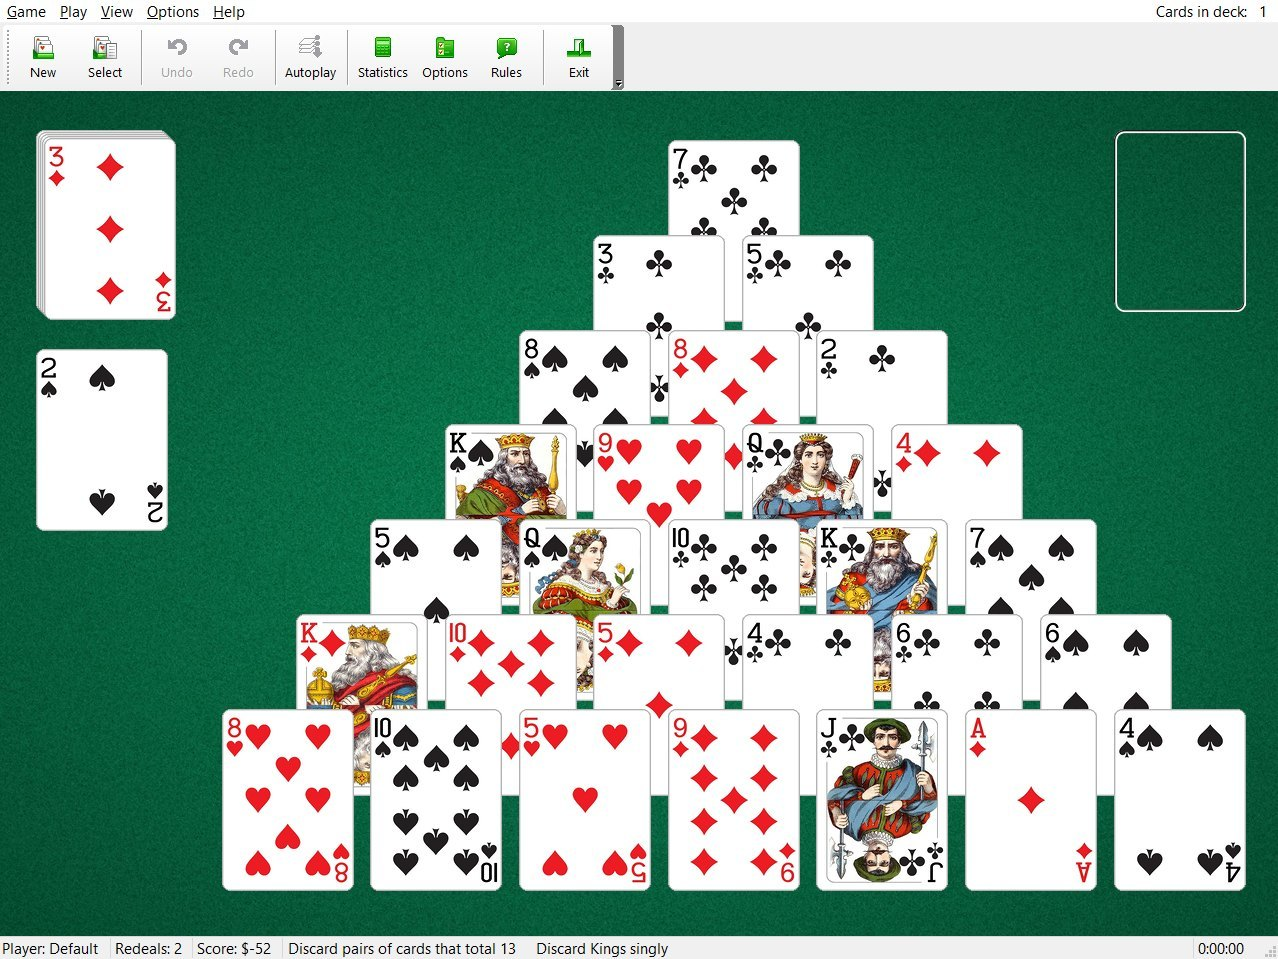 solitaire dating Play best classic solitaire online on girlsgogamescom every day new girls games online best classic solitaire is safe, cool to play and free.